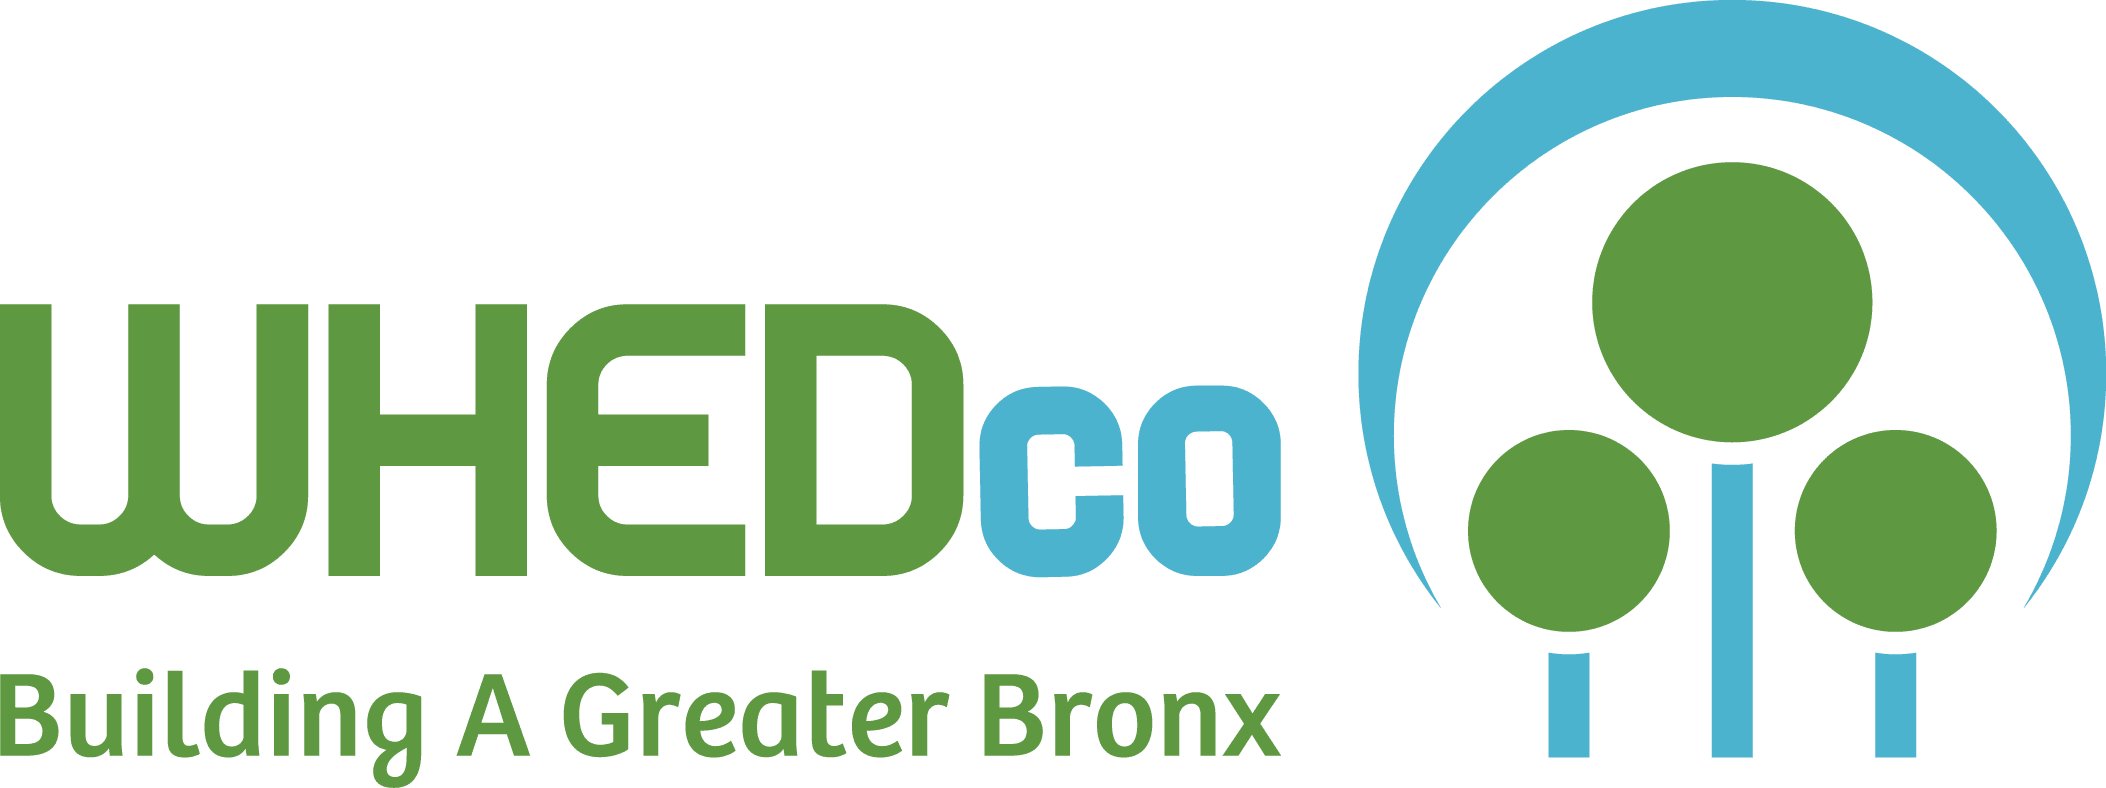 WHEDCO - Women's Housing And Economico Development Corp.